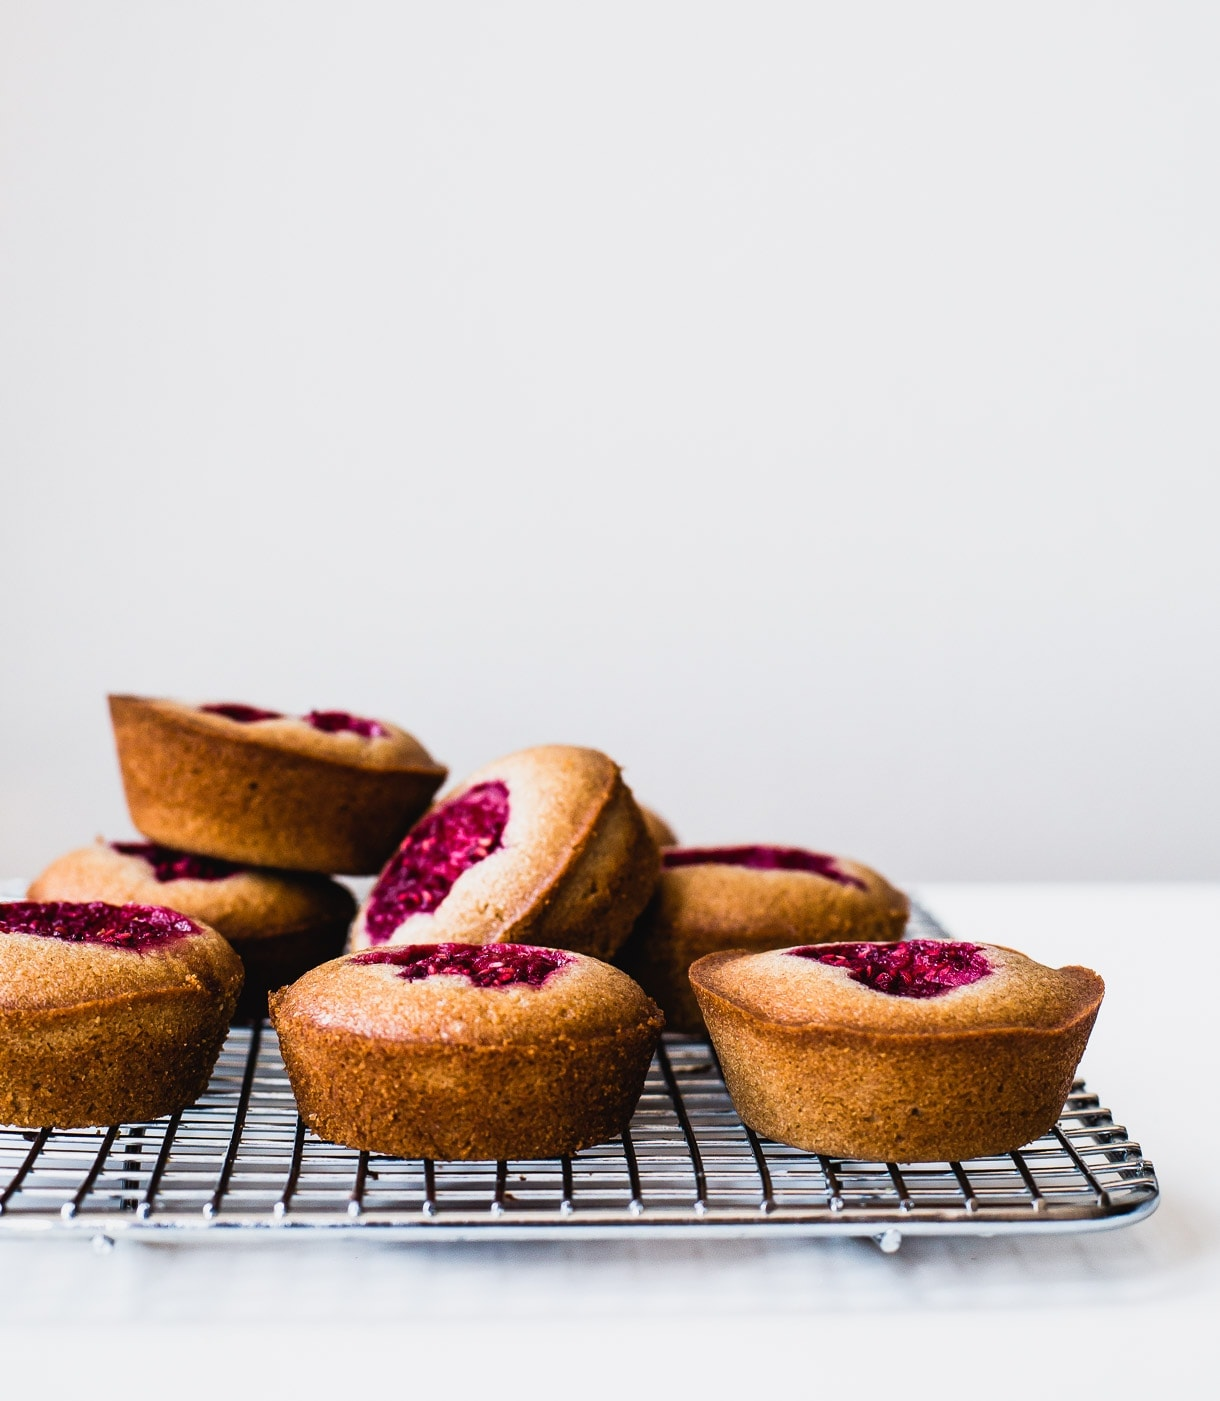 Gluten-Free Raspberry Financiers (mini cakes, cakelets. made with almond flour + teff flour)